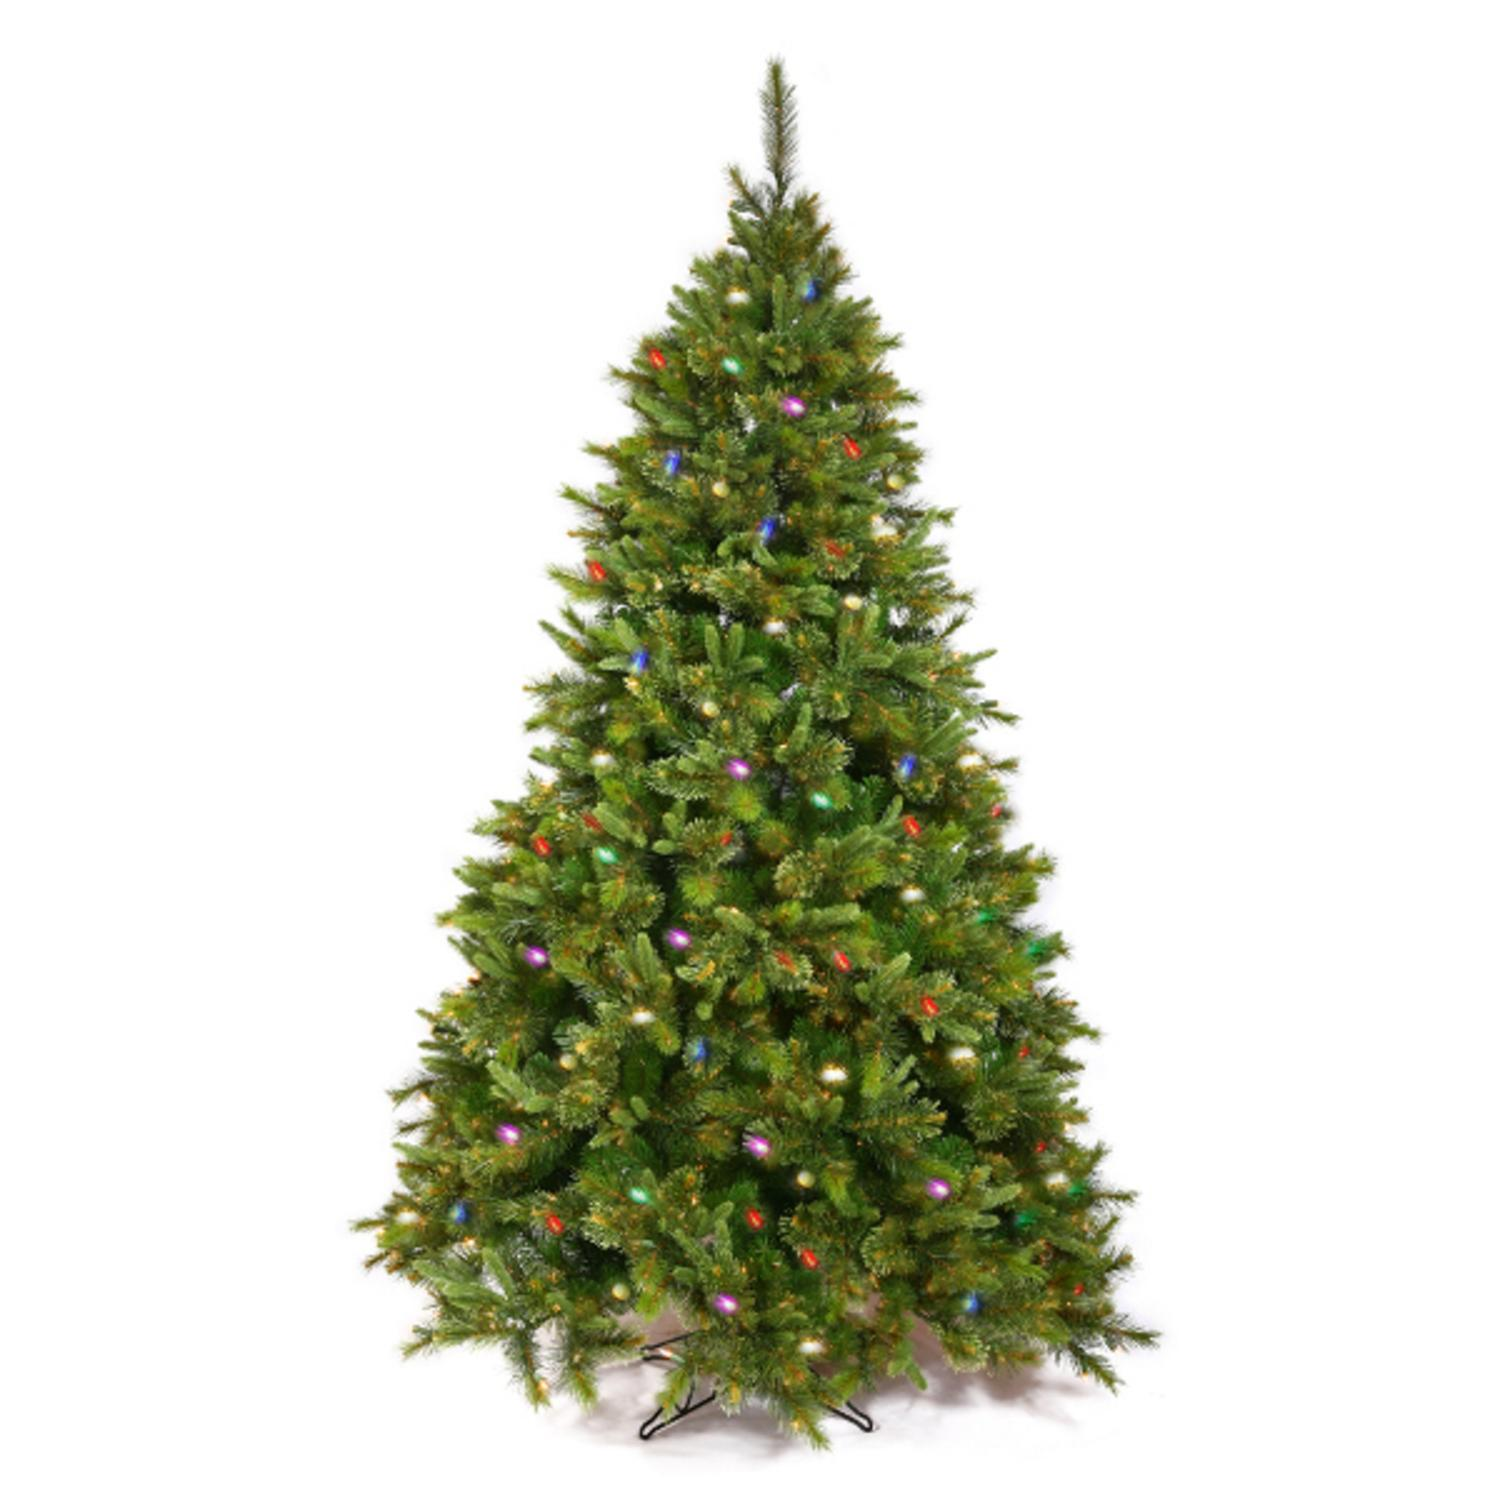 3' Pre-Lit Mixed Pine Cashmere Artificial Christmas Tree - Multi Lights